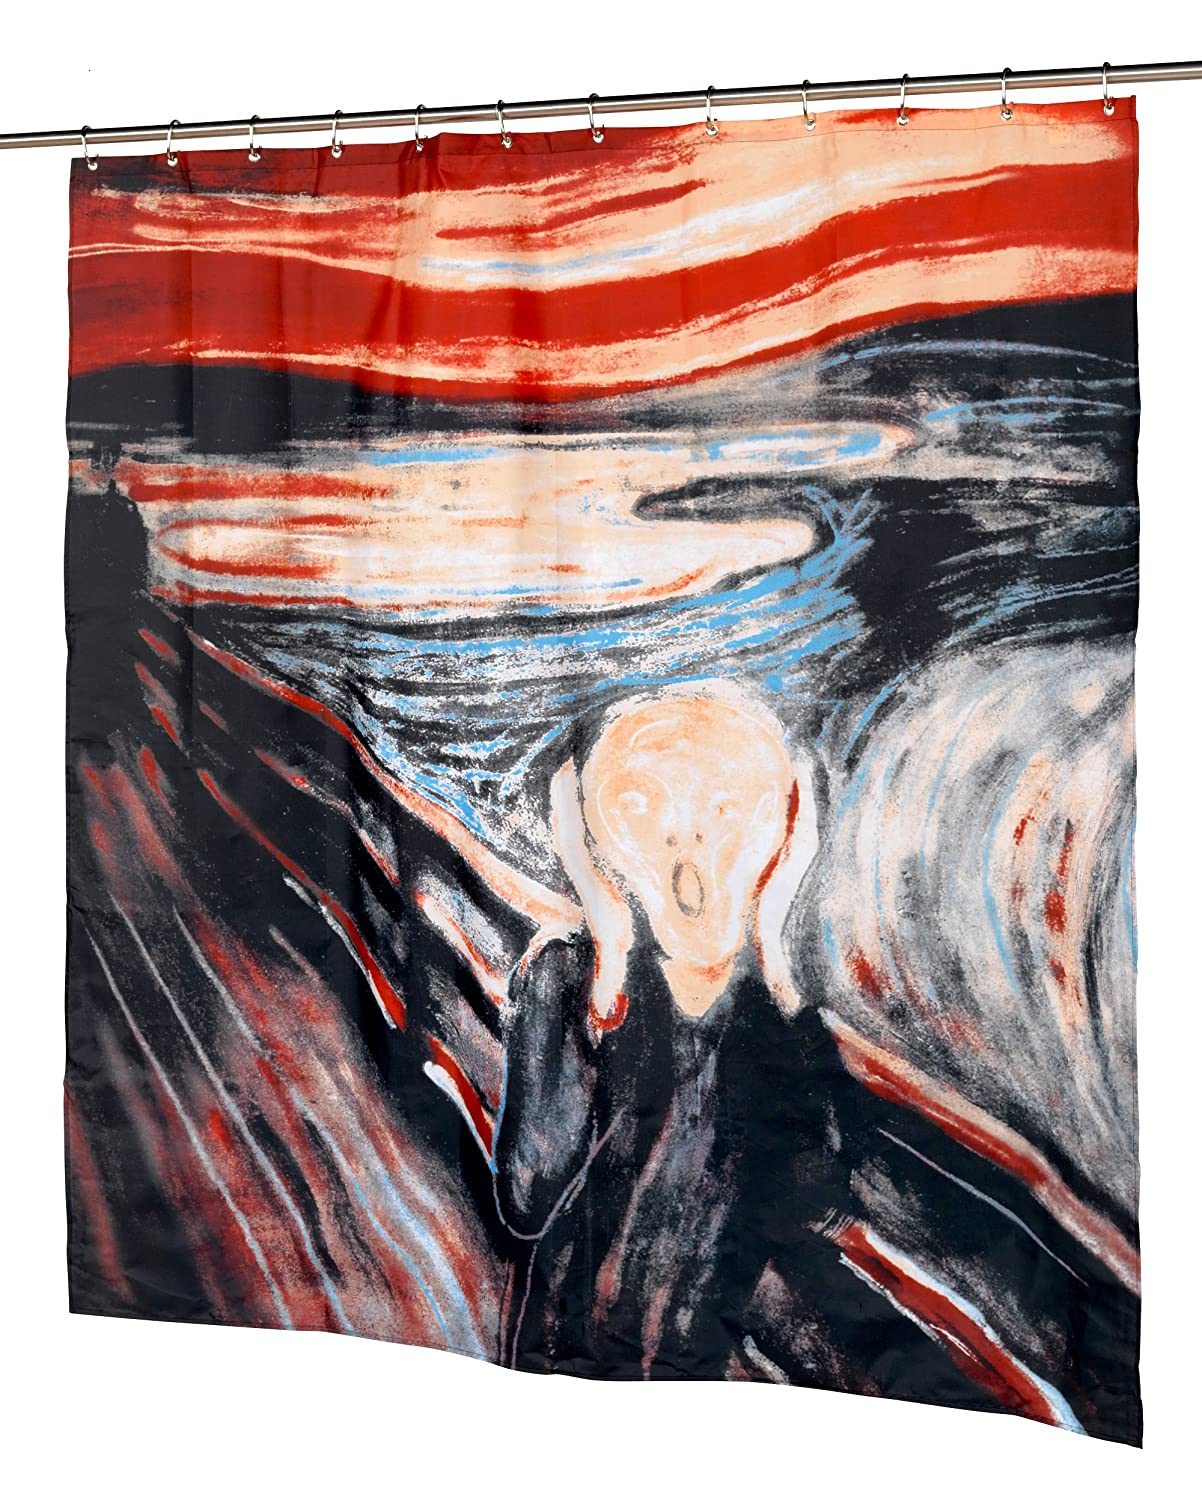 The Scream Fabric Novelty Shower Curtain Museum Collection by artist Edvard Munch Home Bargains